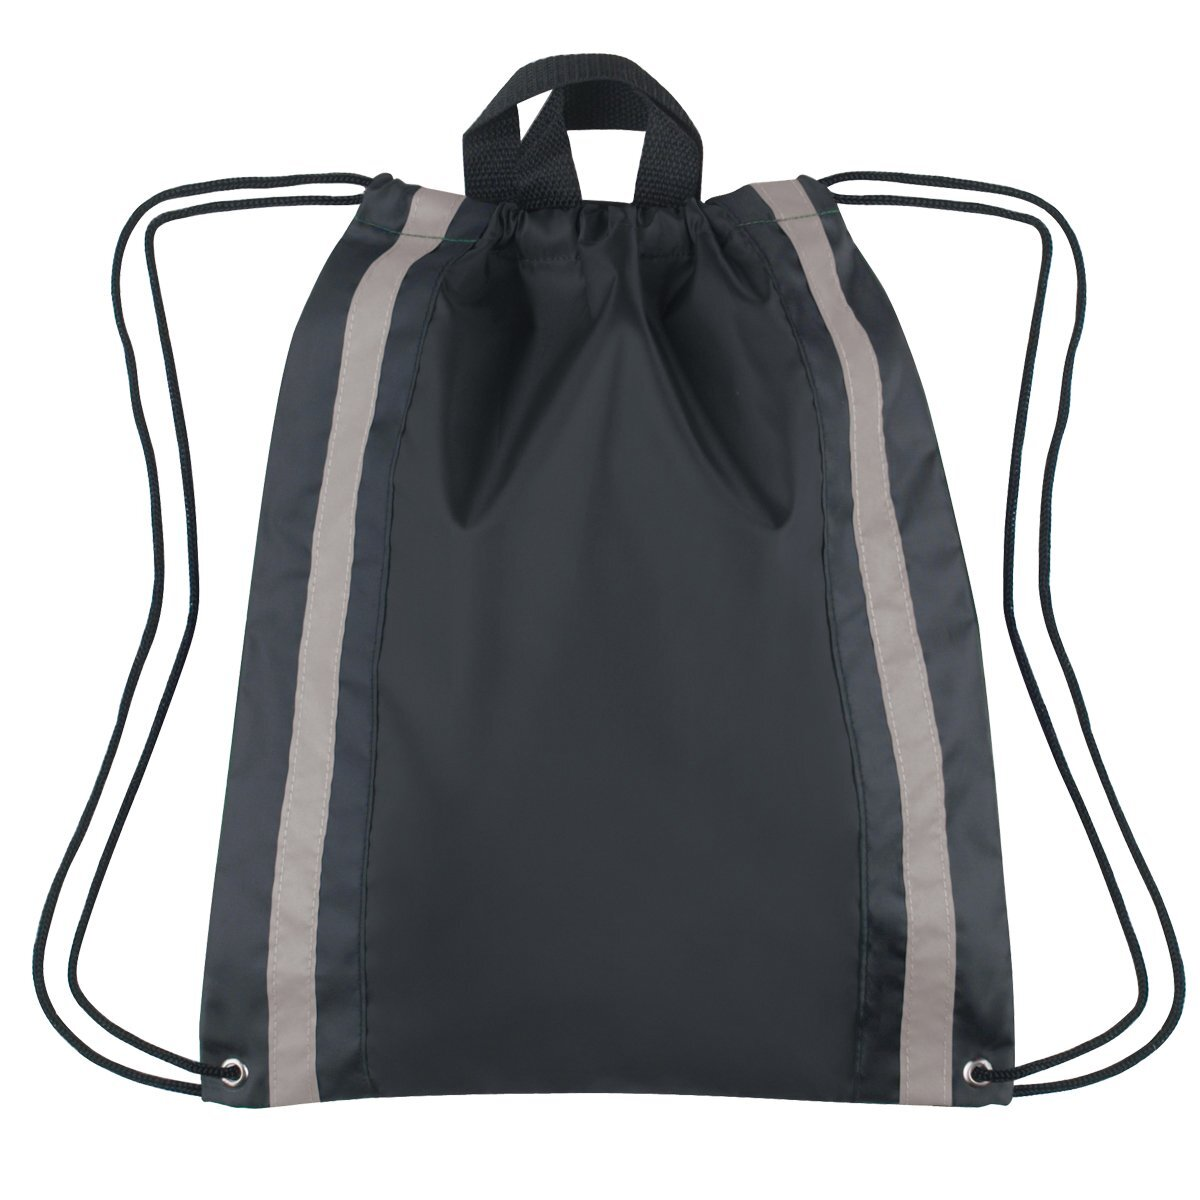 Reflective Nylon Sports Pack, Large